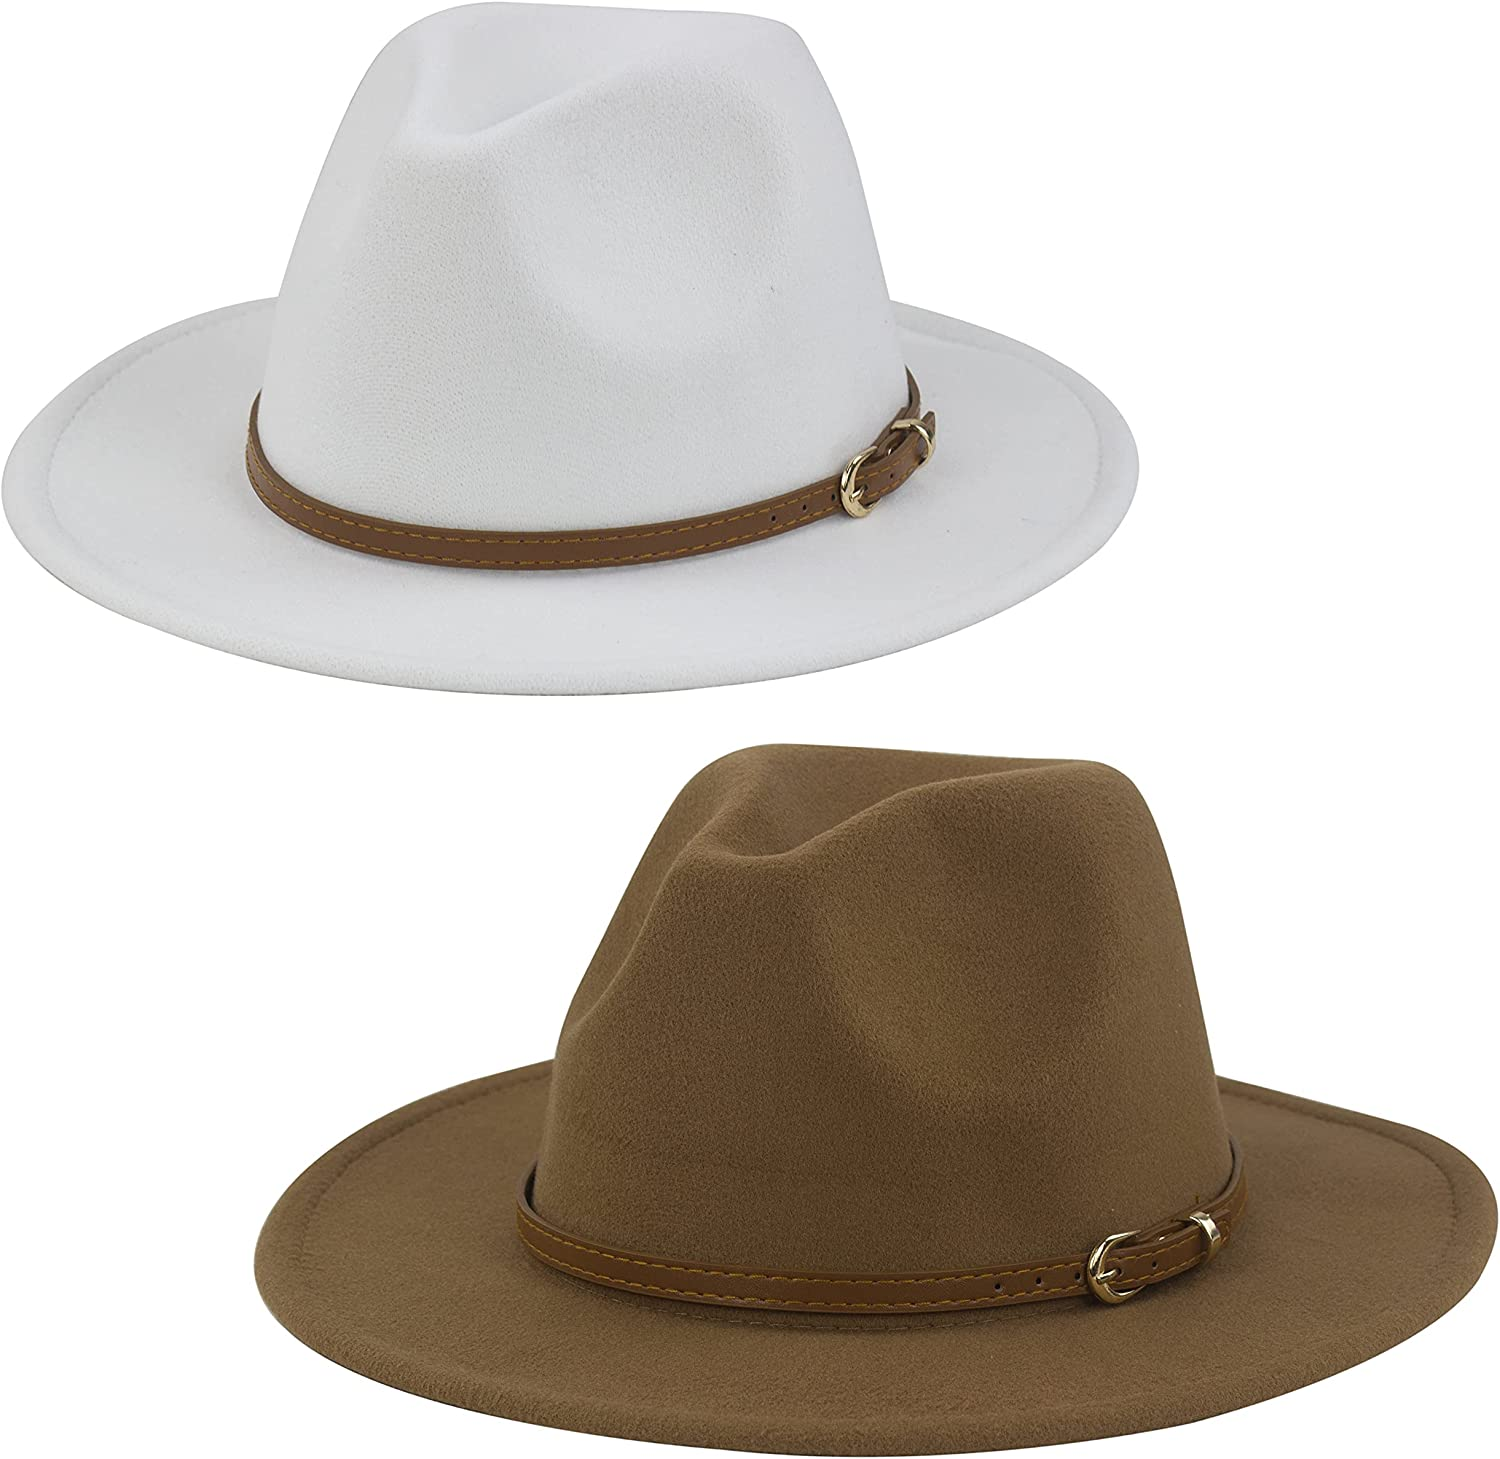 Muryobao 2 Beauty products Pieces Womens Our shop most popular Classic Wide Brim Hat Panama Buckl Belt